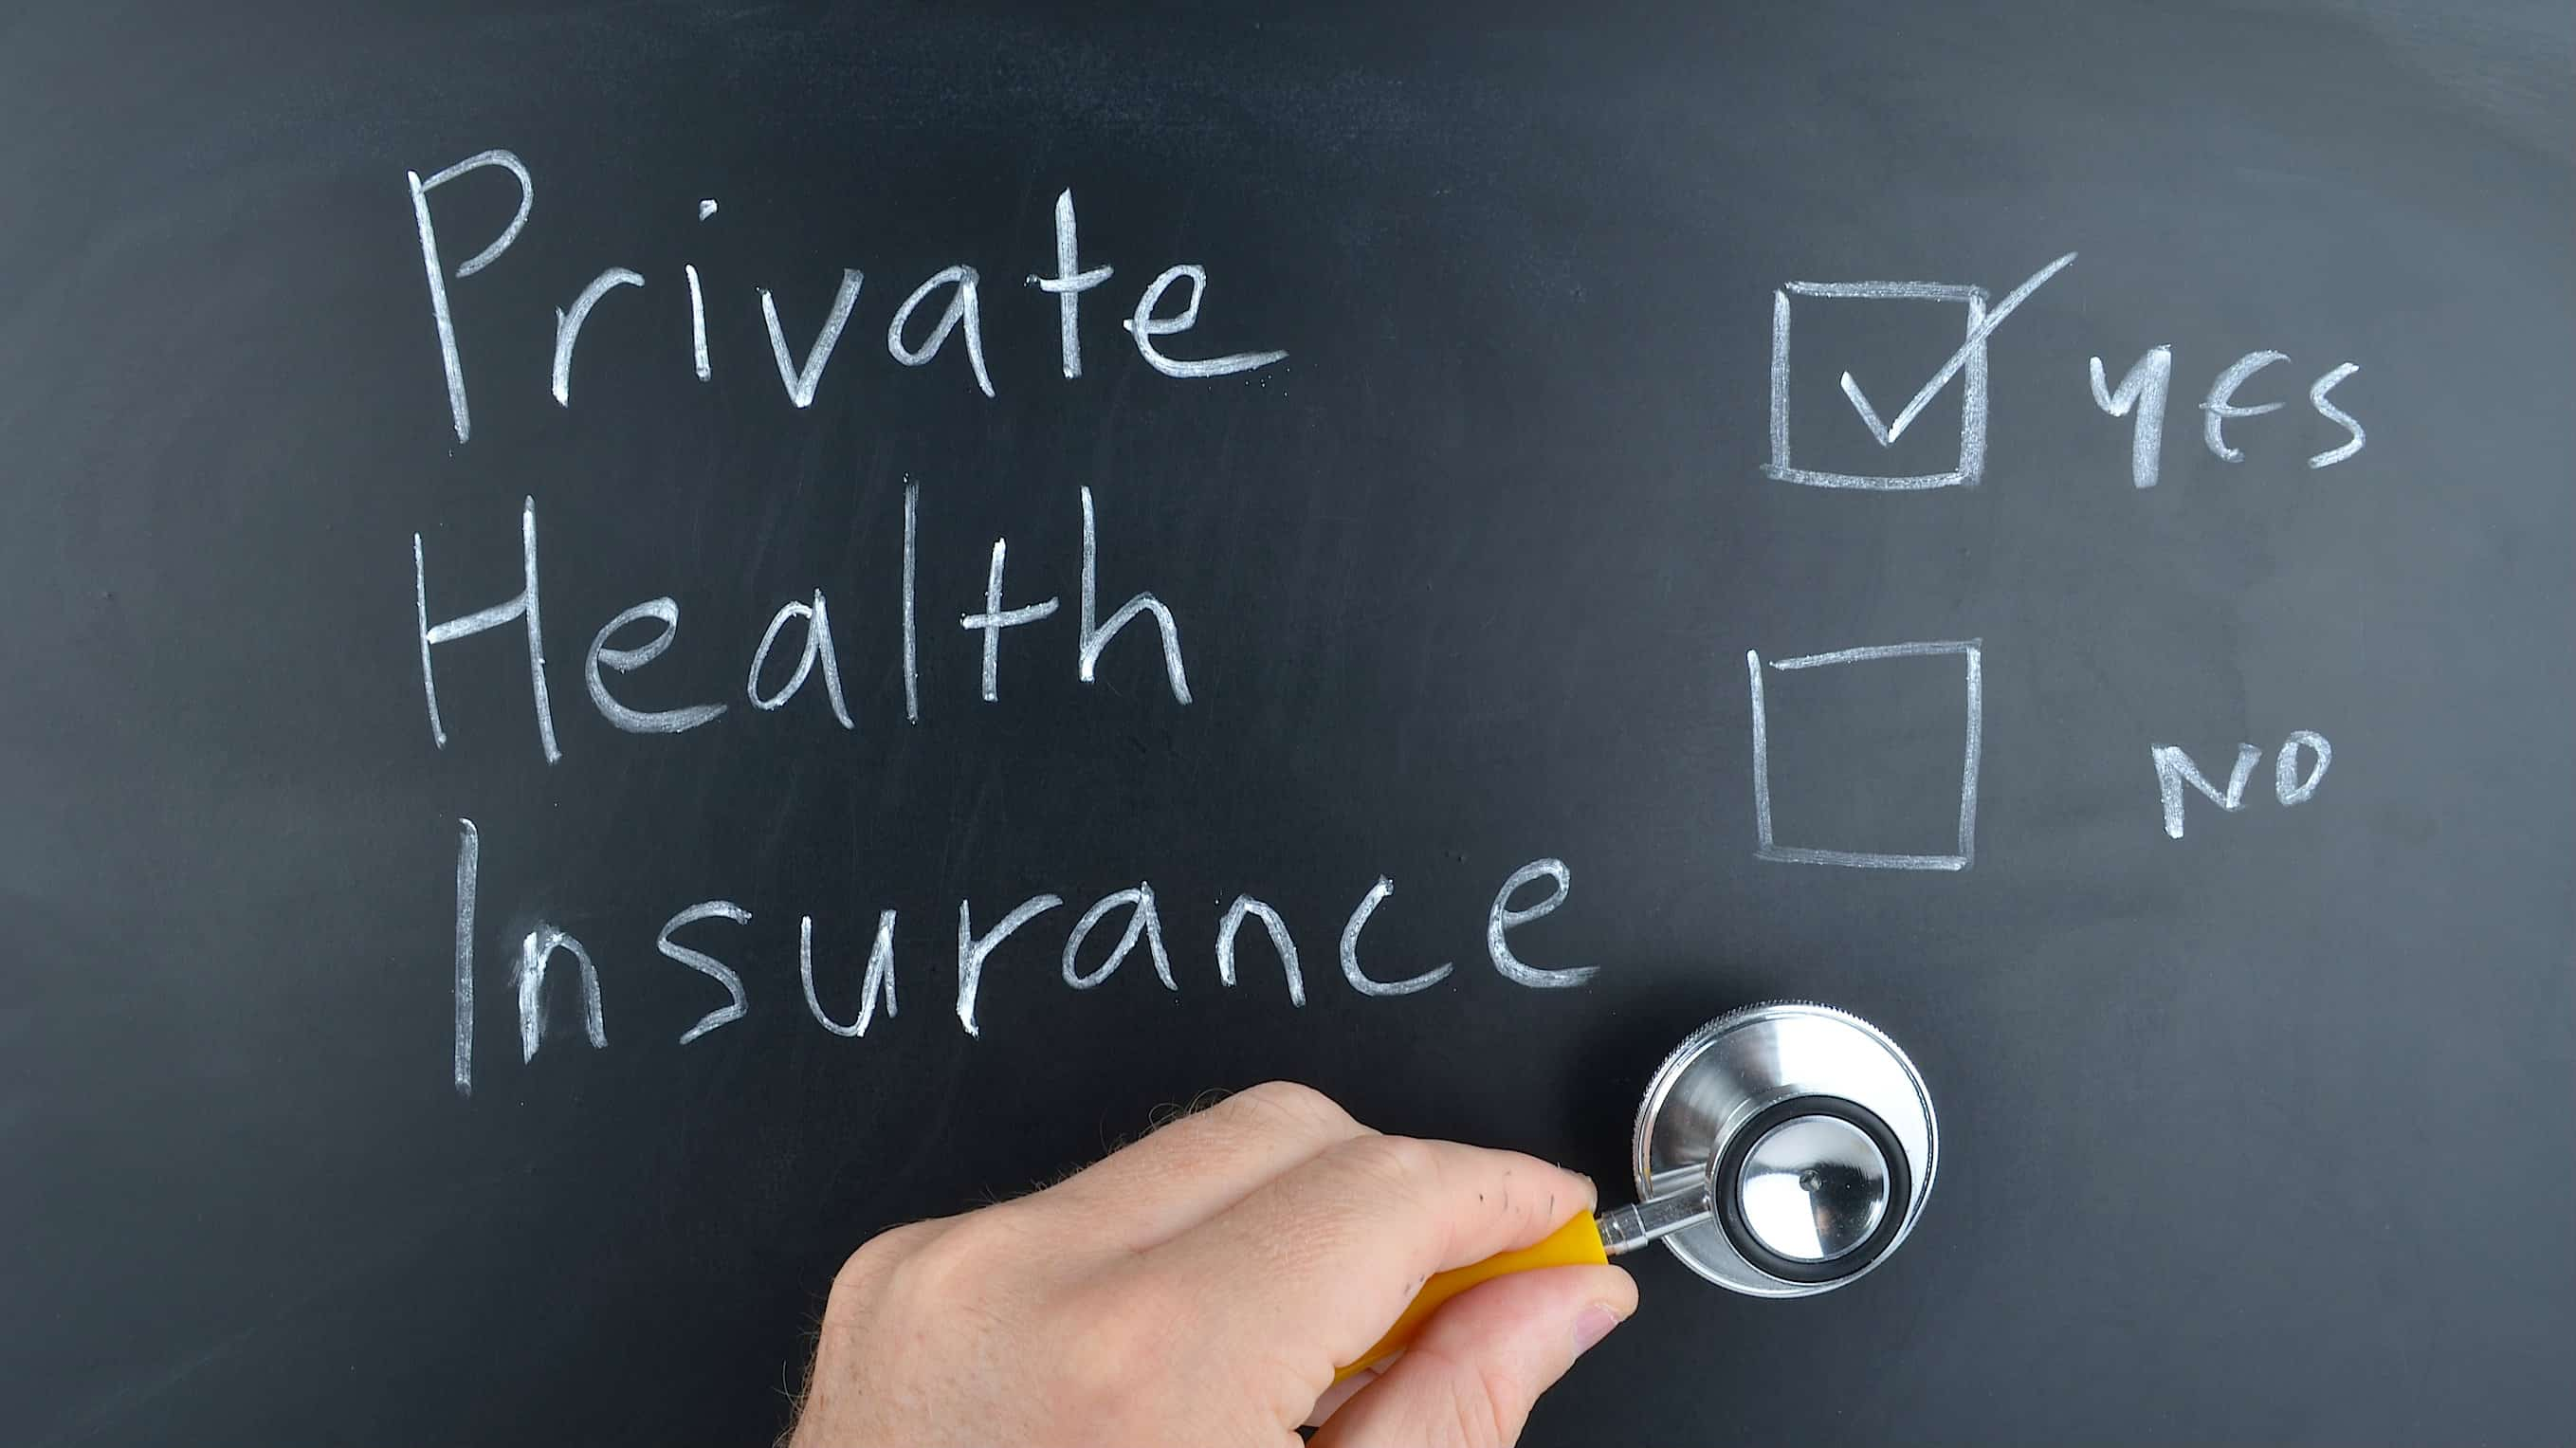 Private Health Insurance >> Are Private Health Insurance Shares A Buy Motley Fool Australia